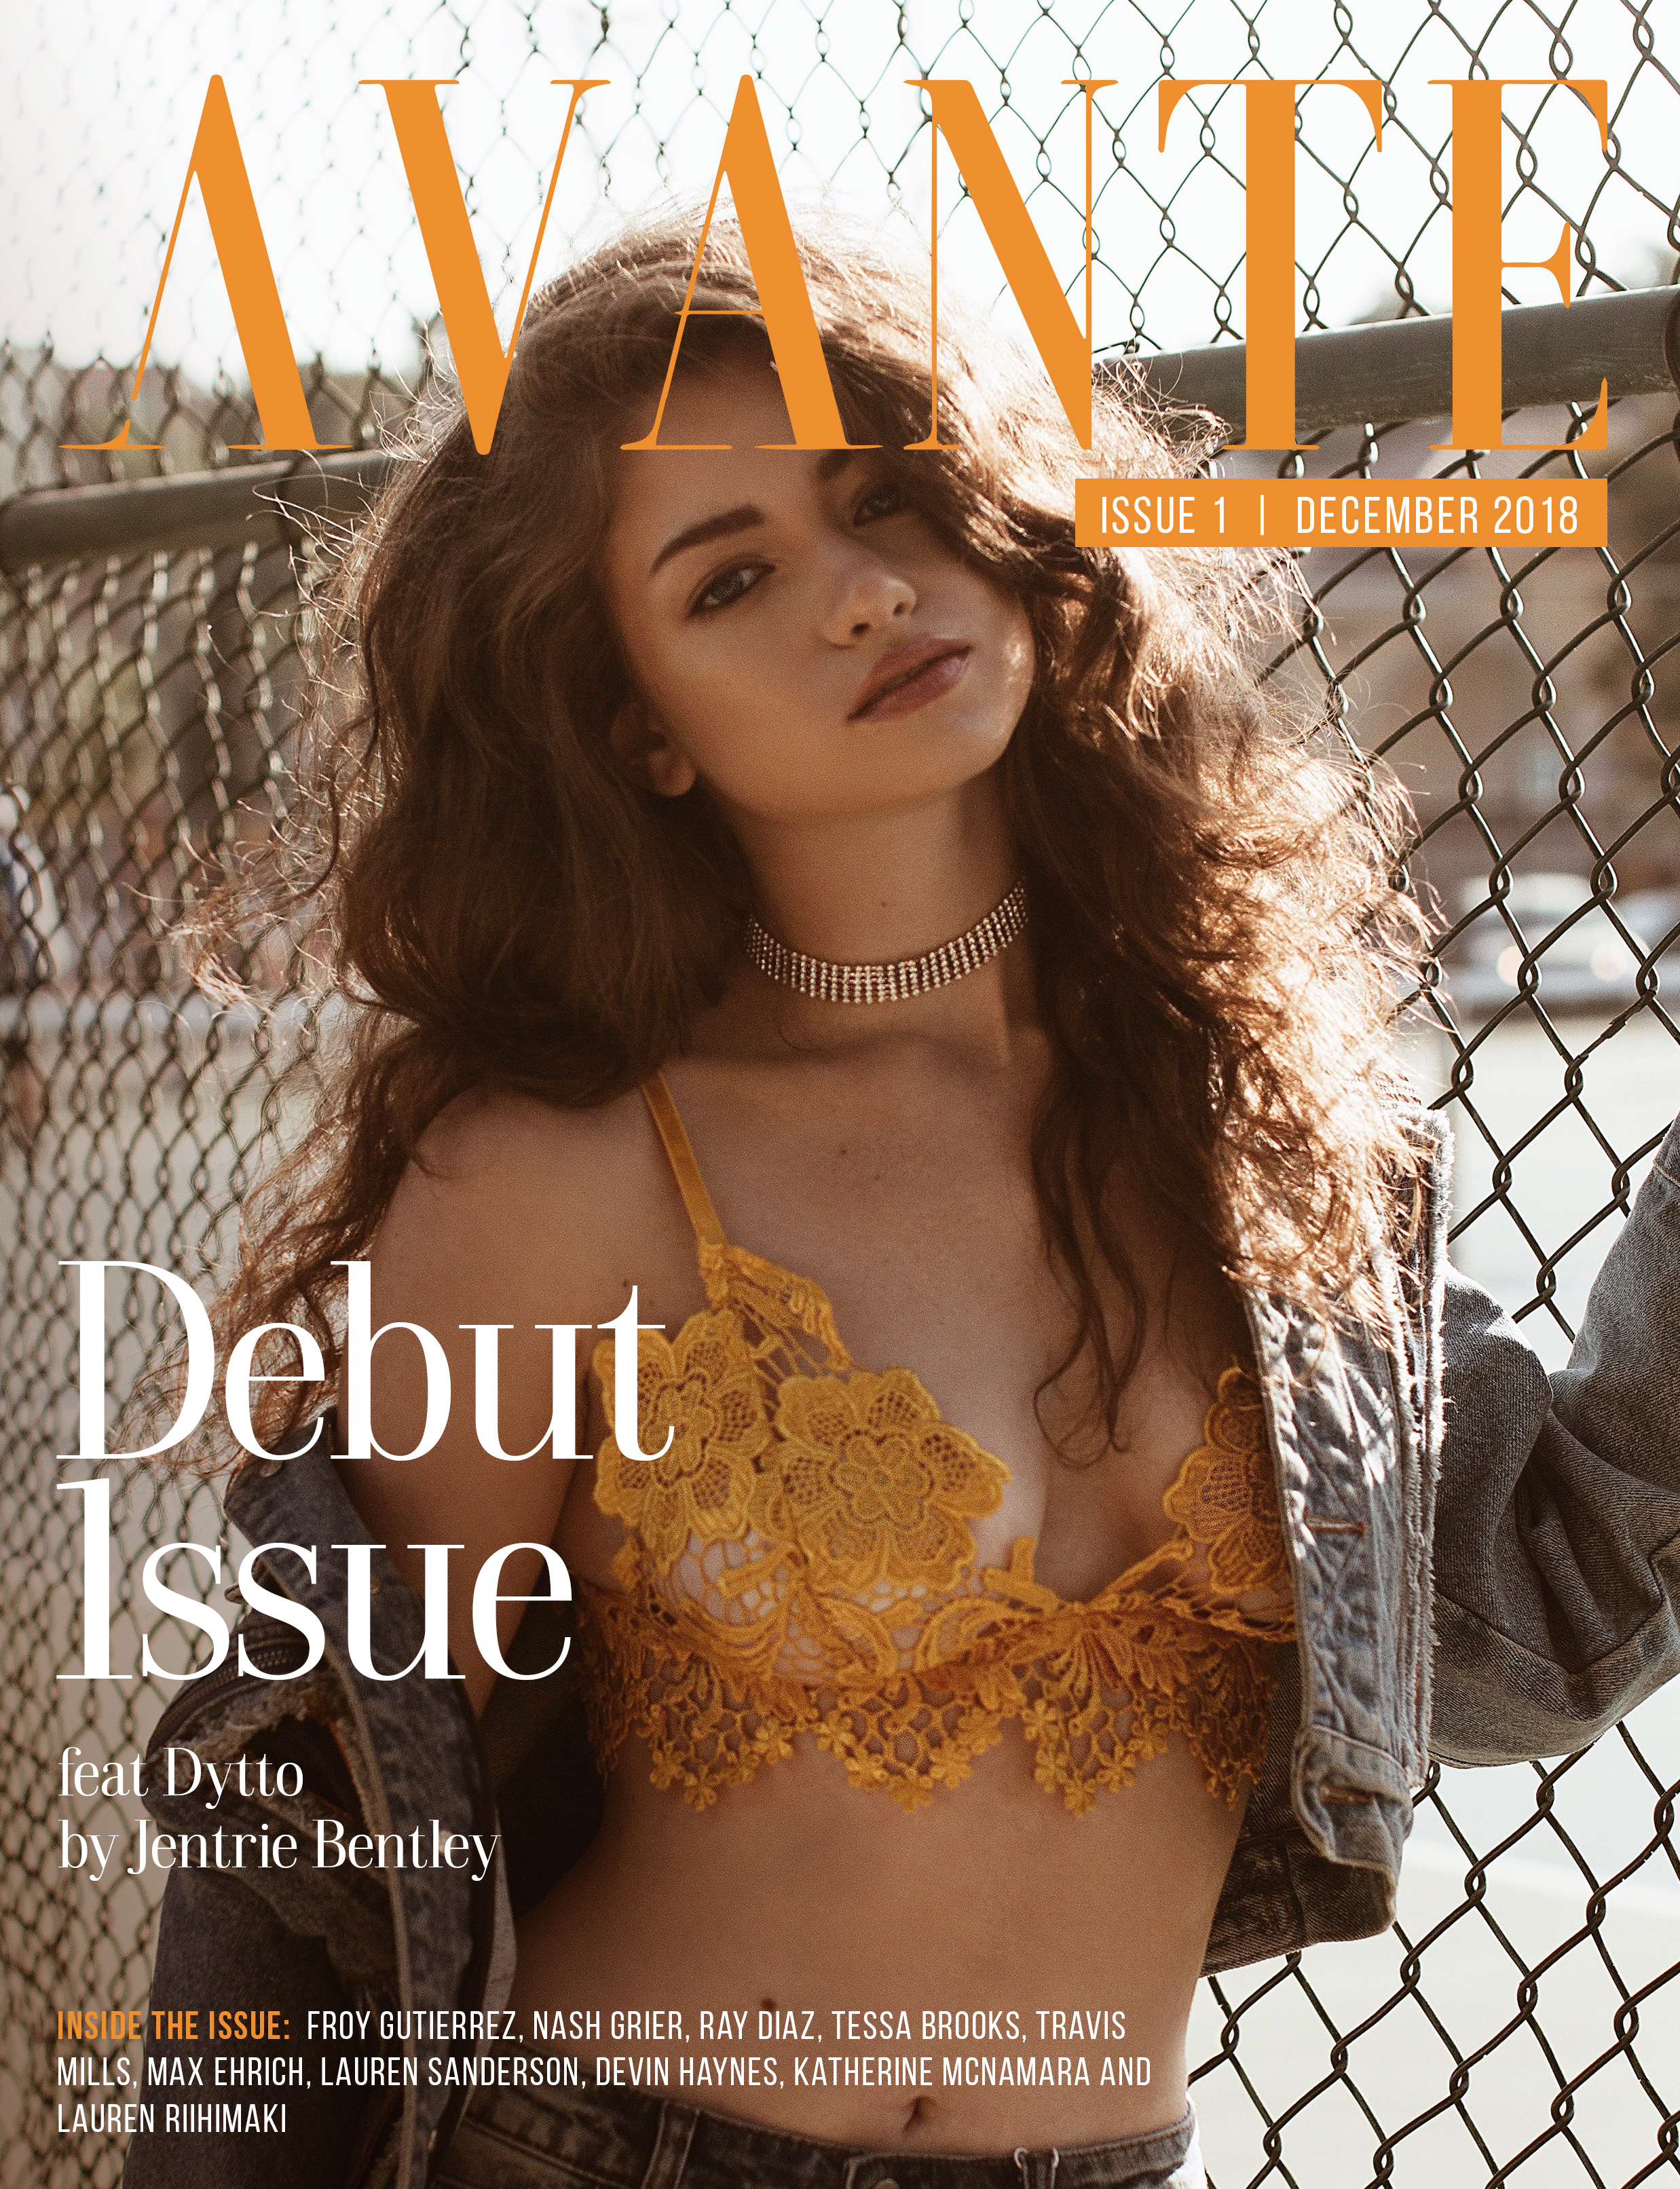 Debut Issue: Dytto Cover